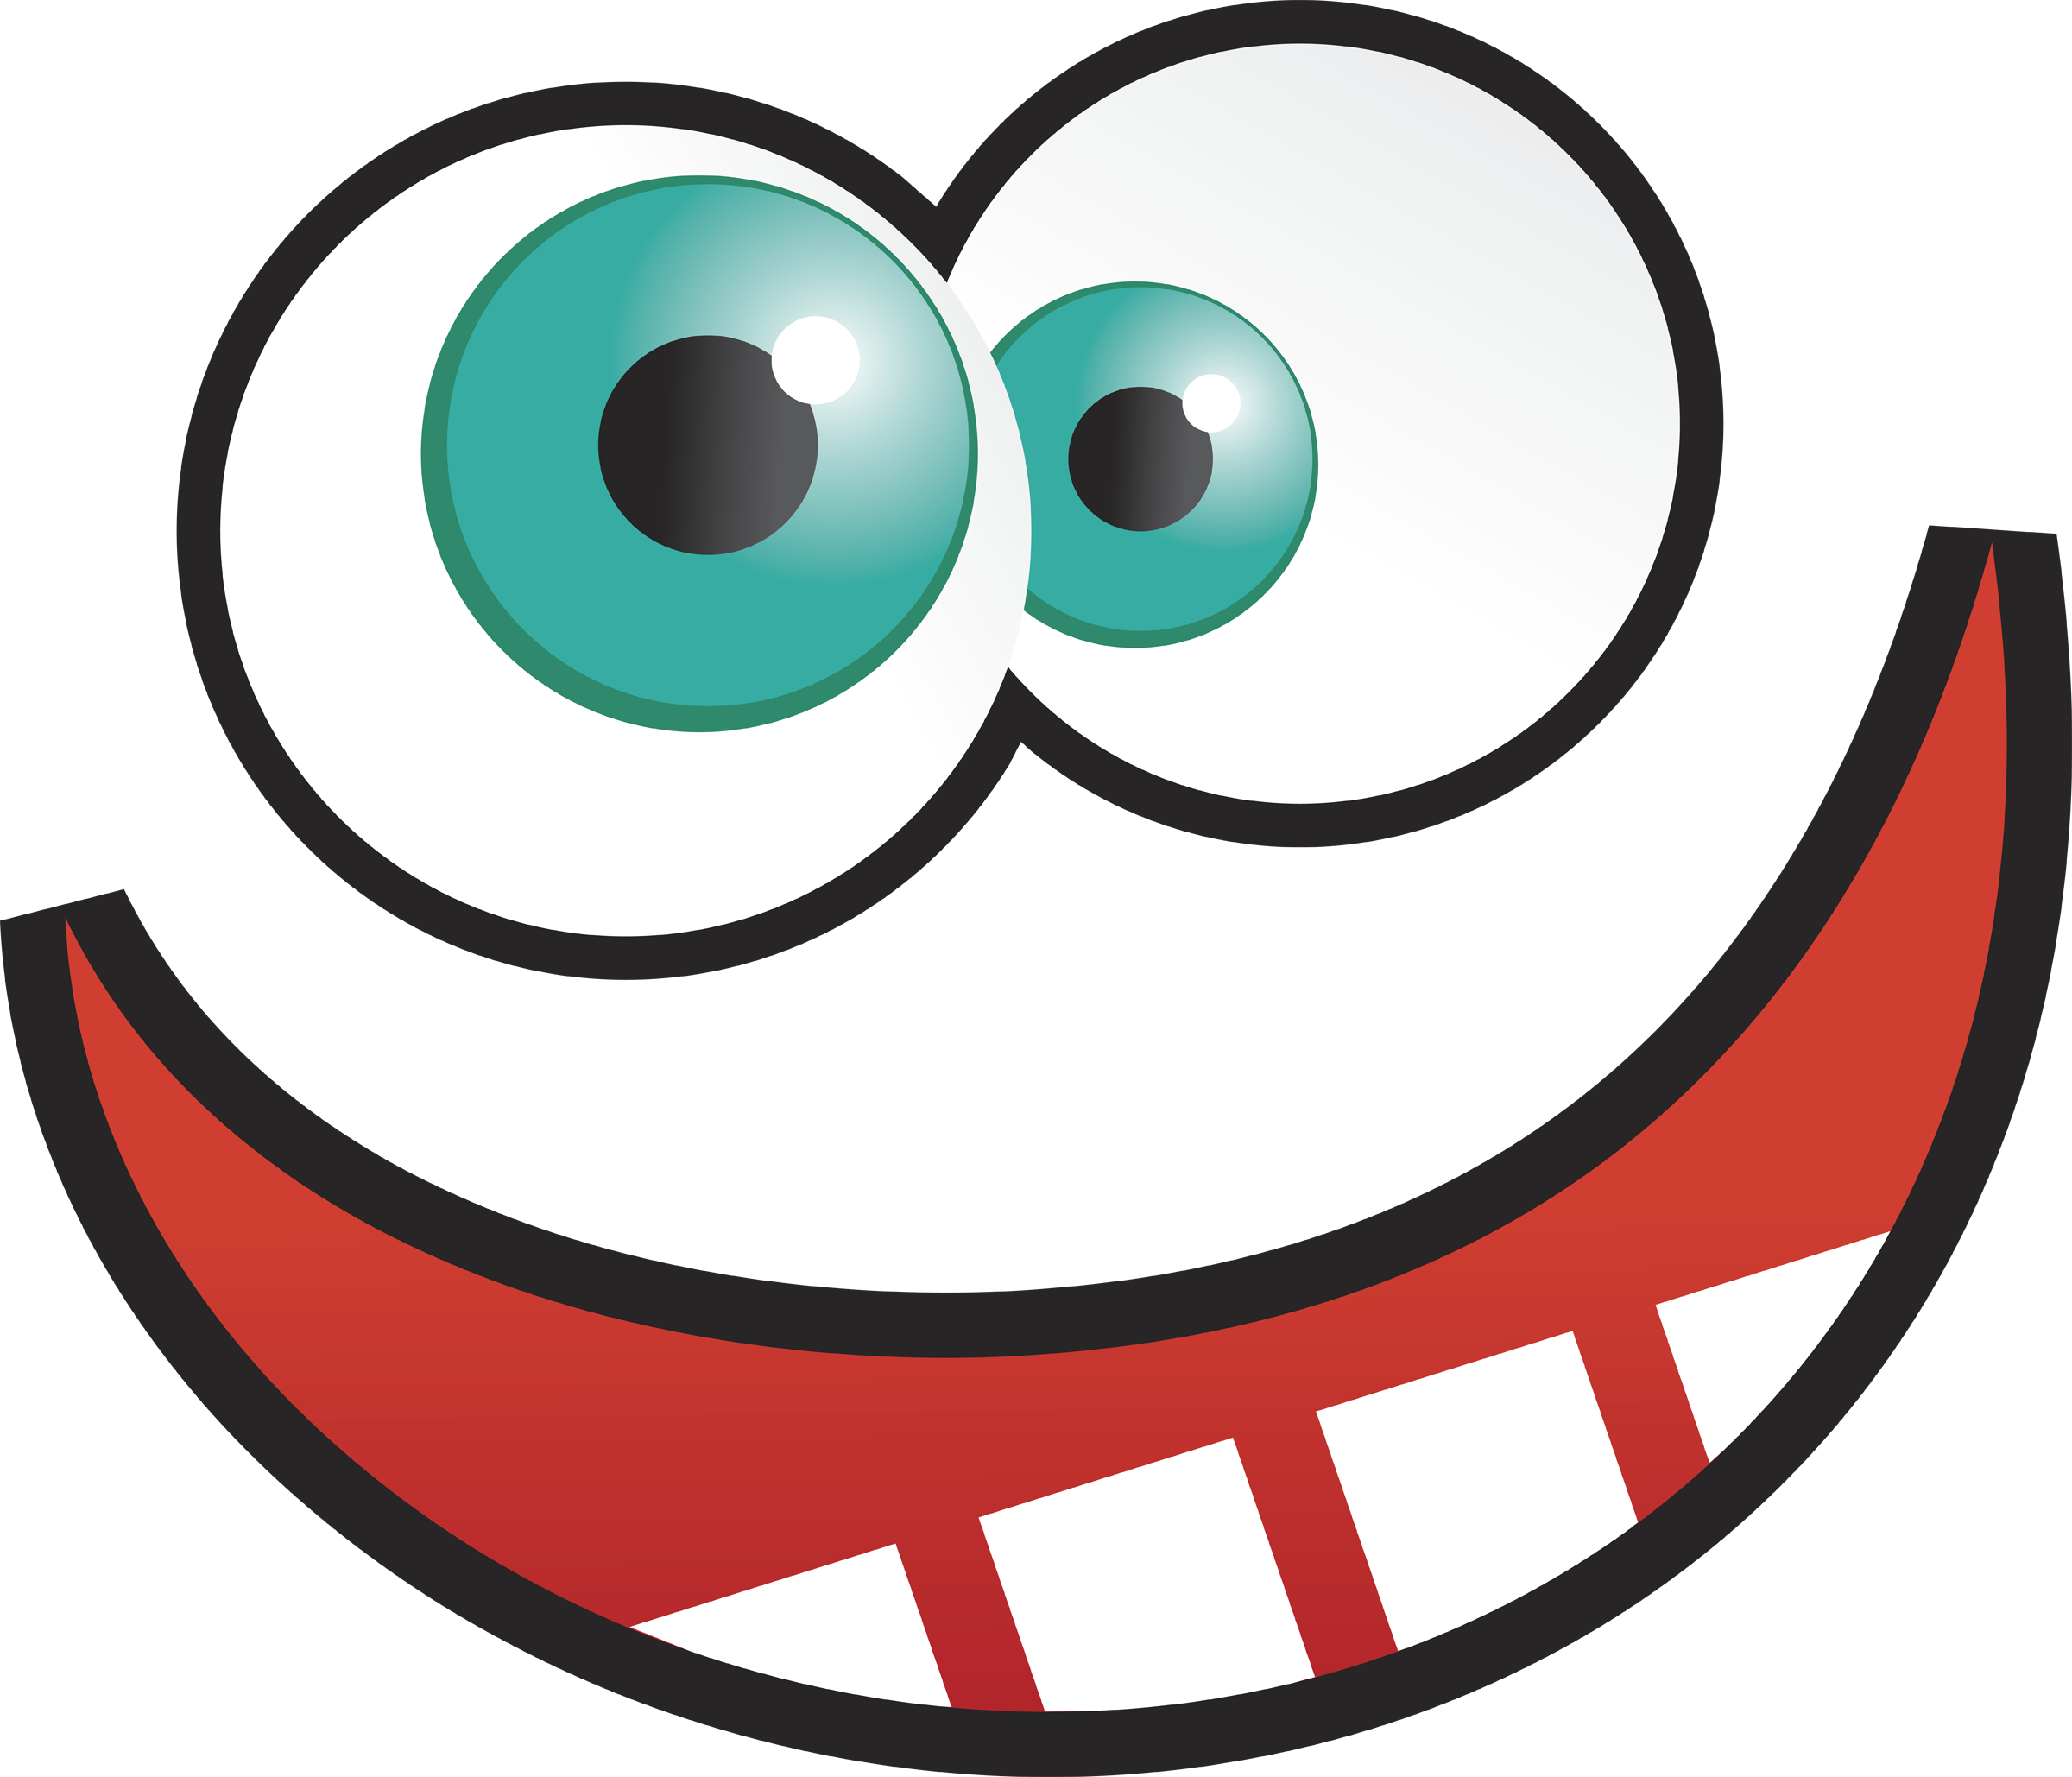 Picture clipart eye. Eyeballs cartoon free download